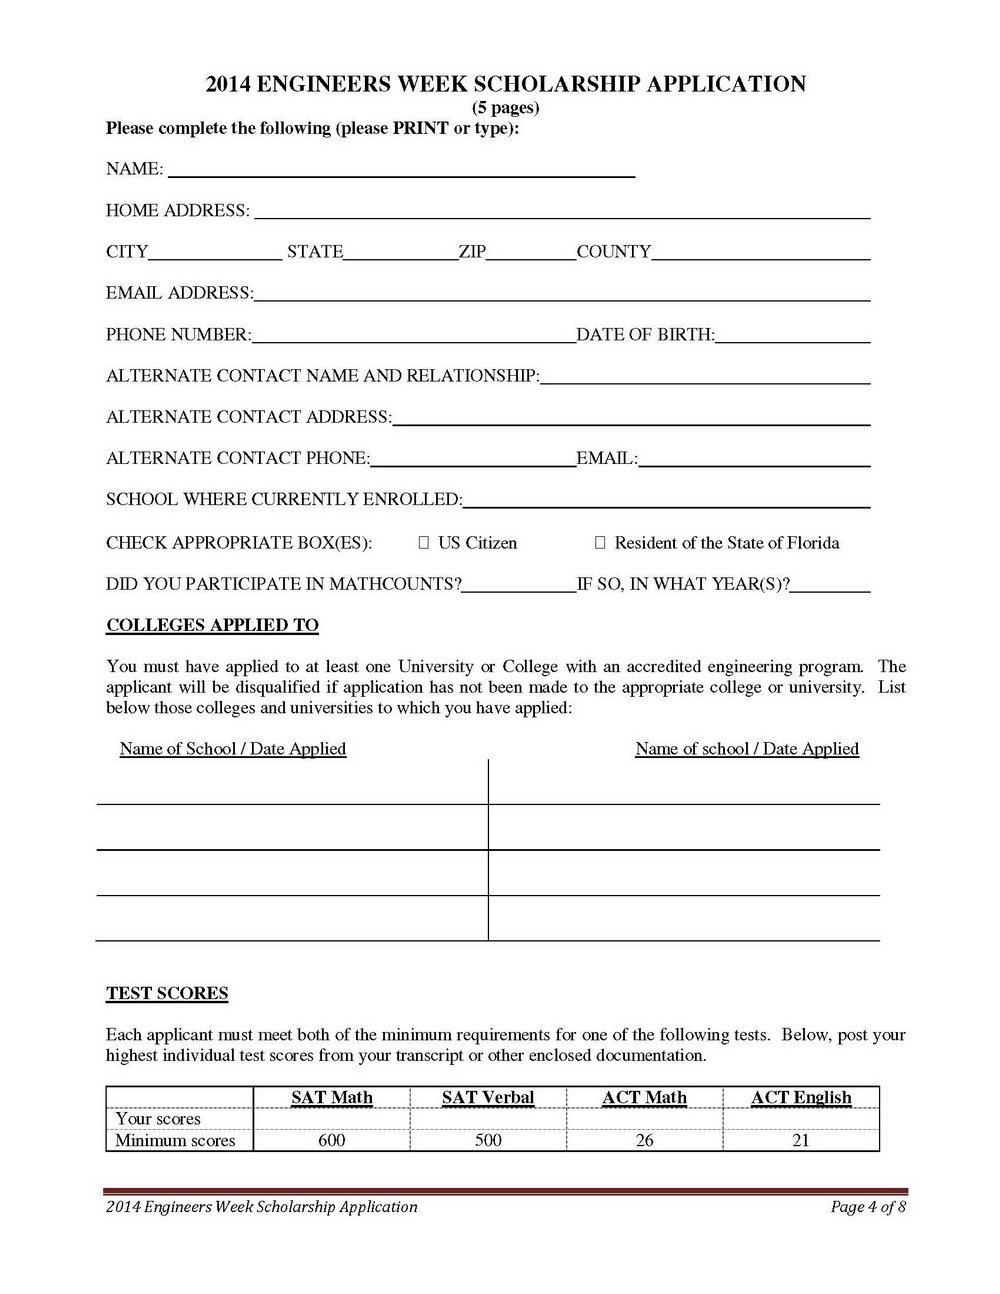 501c3 Application Form 1023